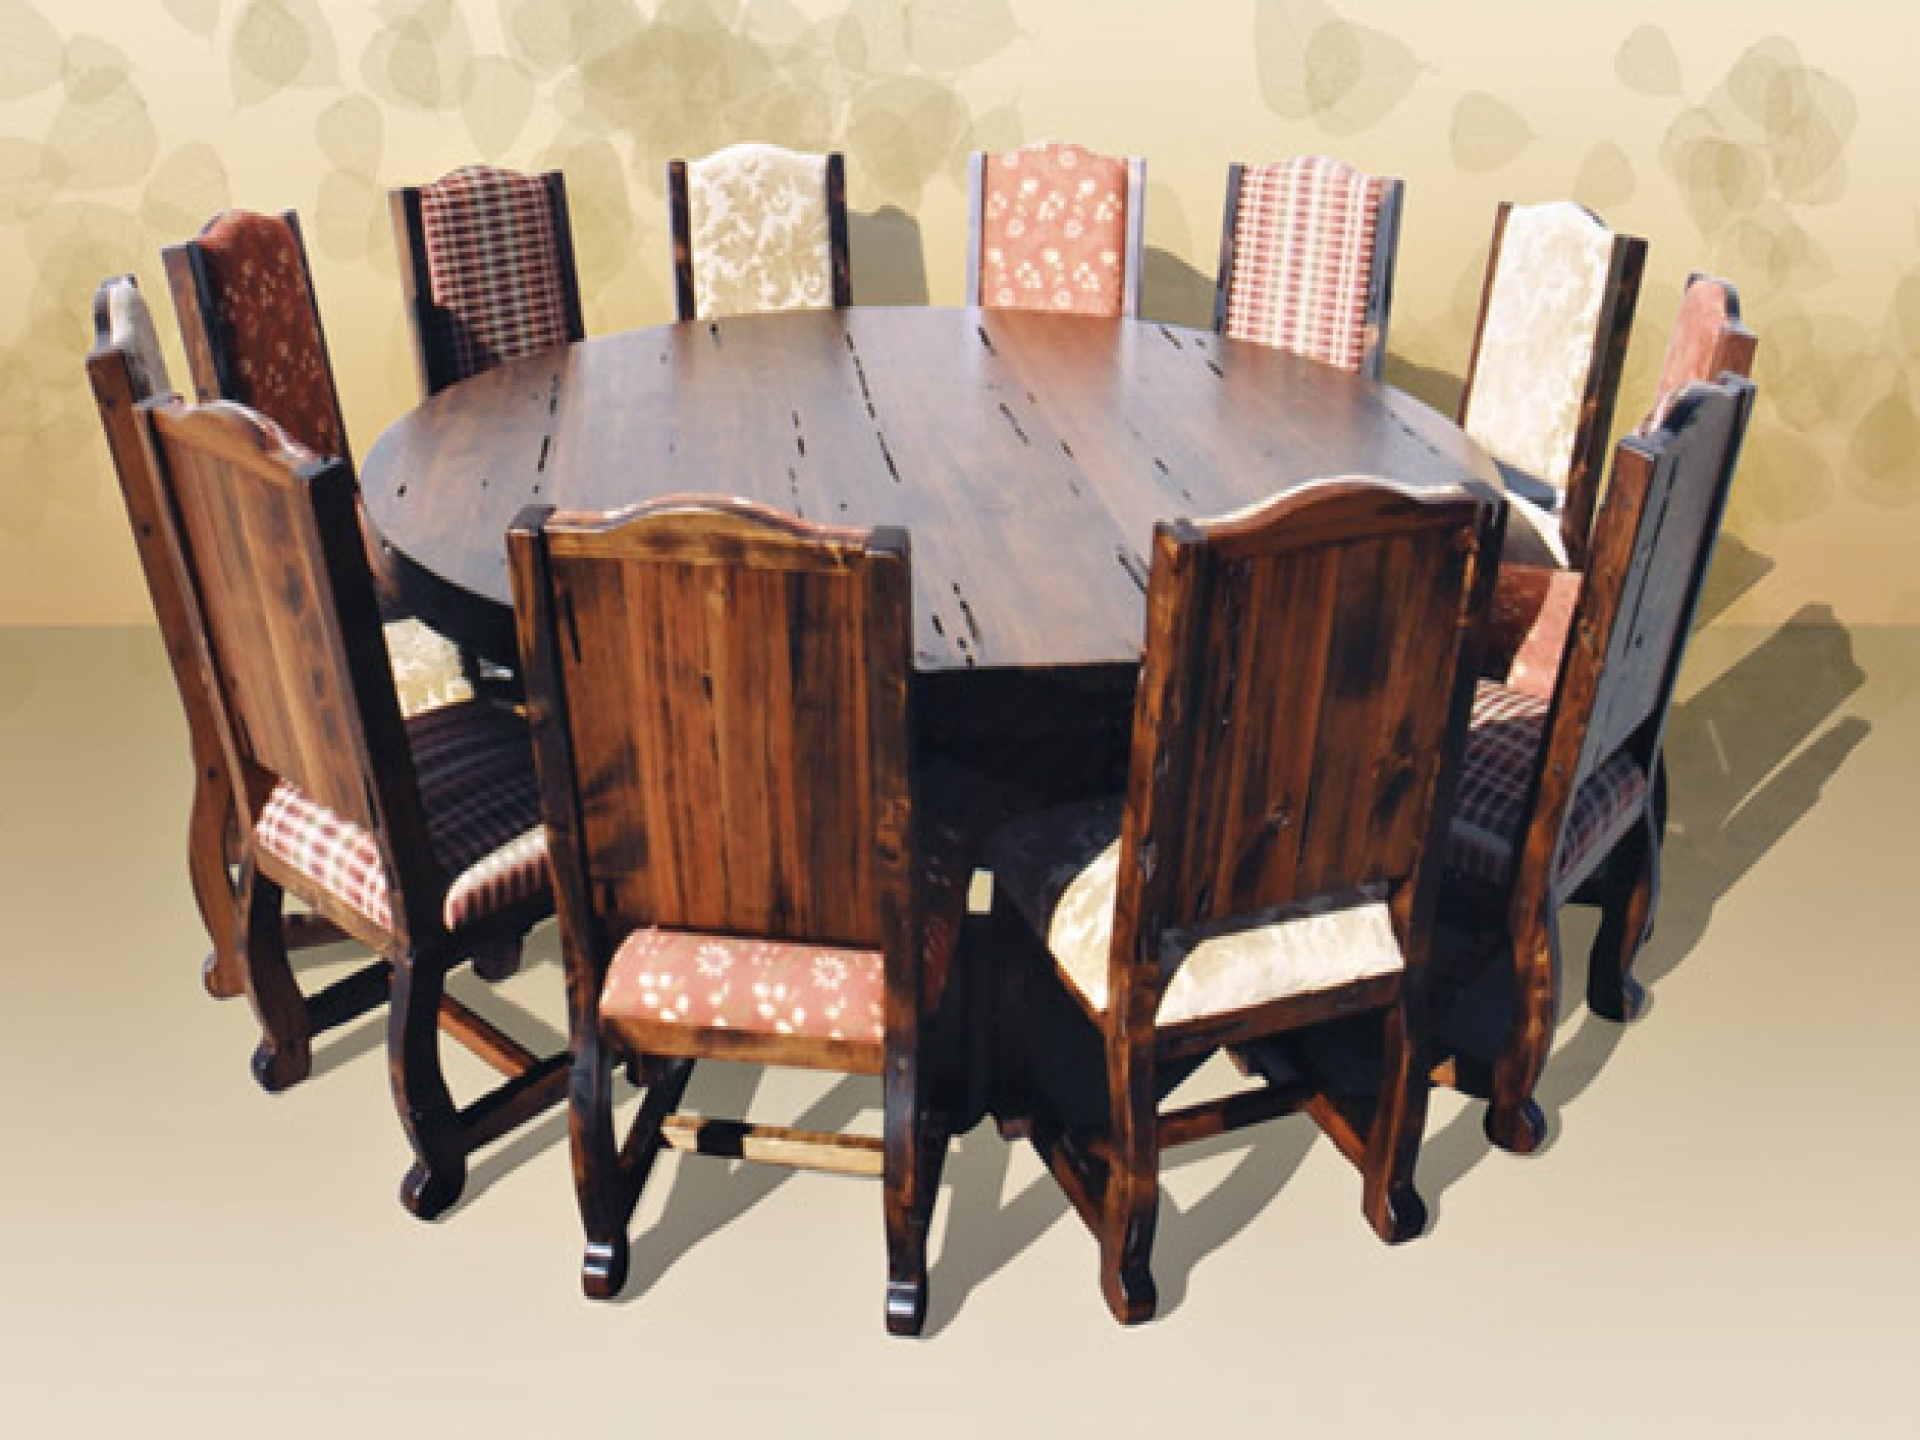 Round Table Seats 10 Dining Room Table Seats 12 For Big Family Homesfeed